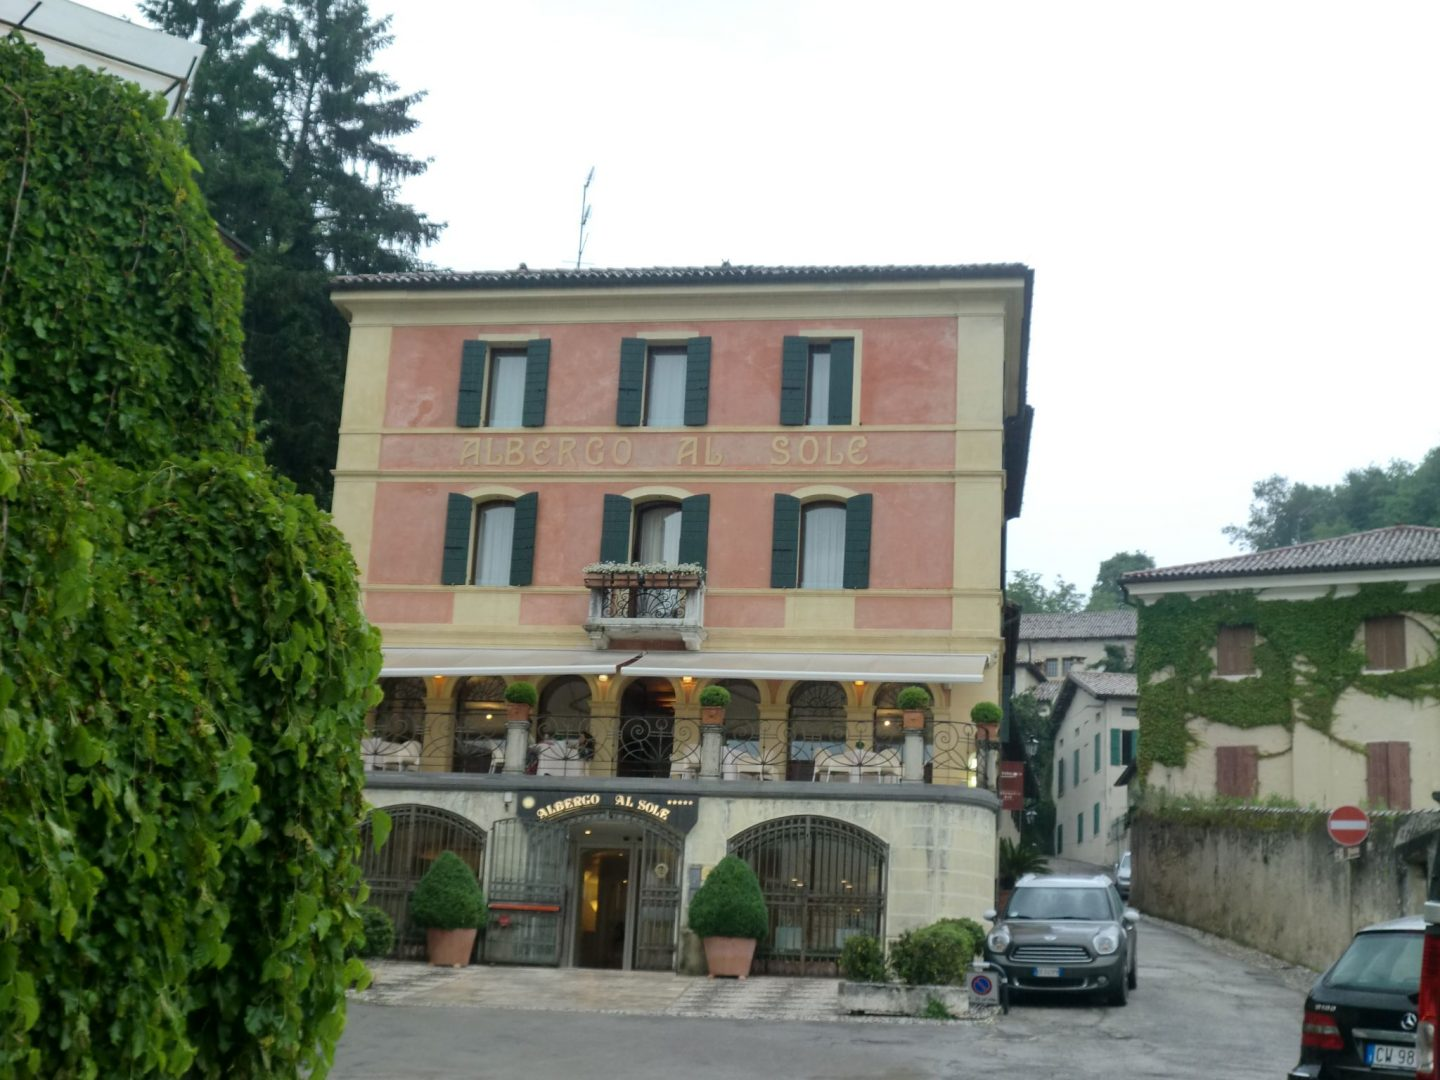 book an hotel 6 1440x1080 - Book a hotel in Asolo